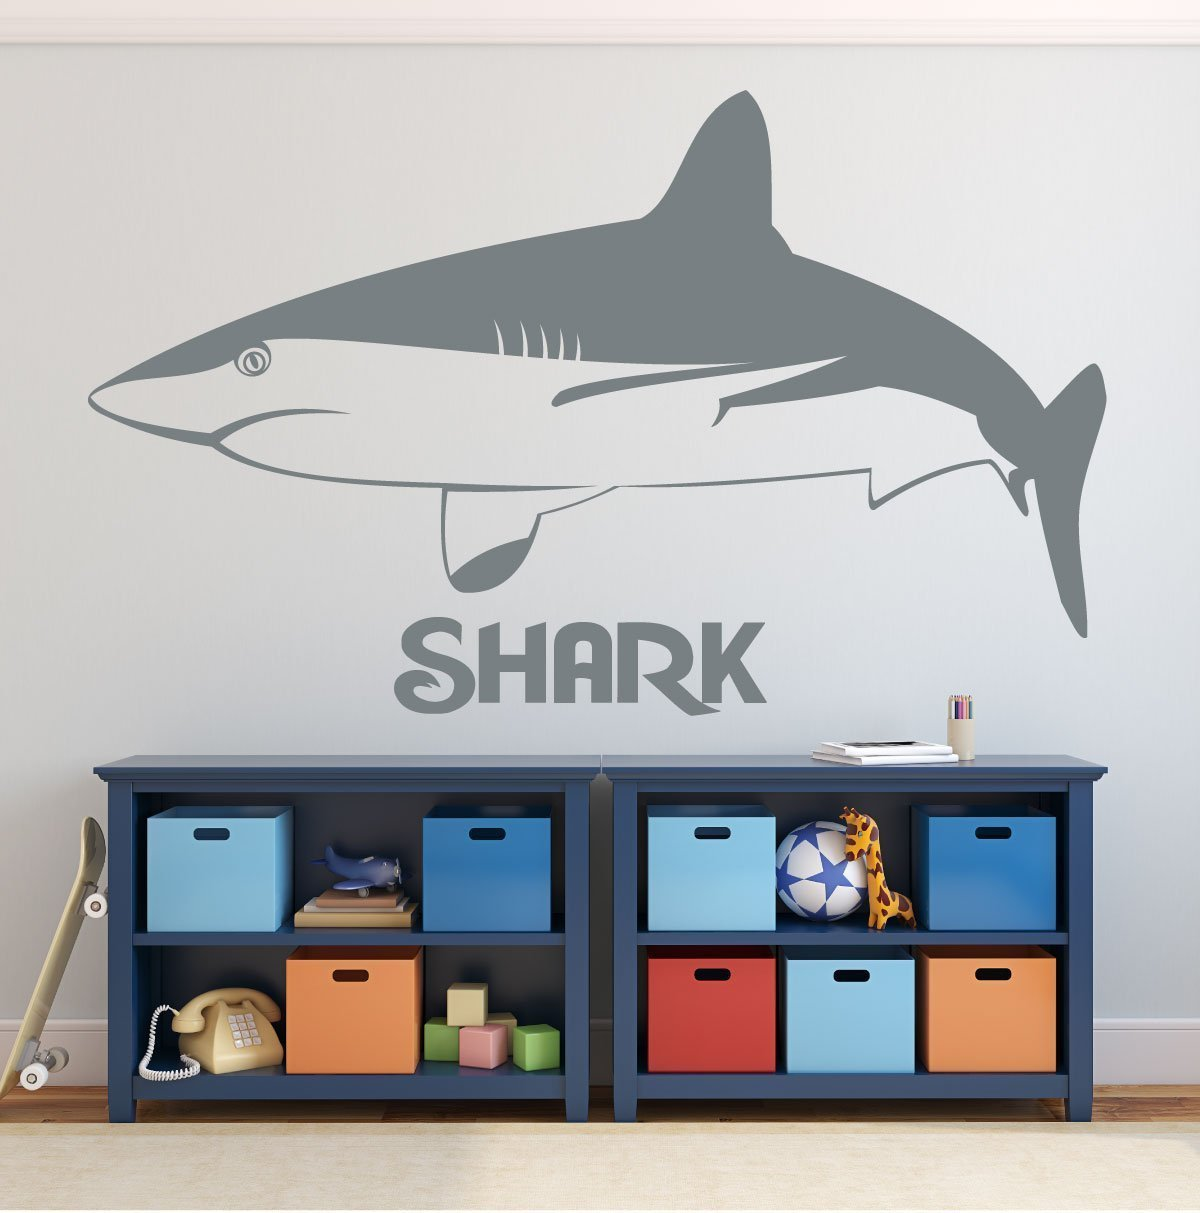 Shark Wall Decal - Vinyl Sticker Art for Home Decor, Bedroom, Room, Playroom Decoration - Diver Gift